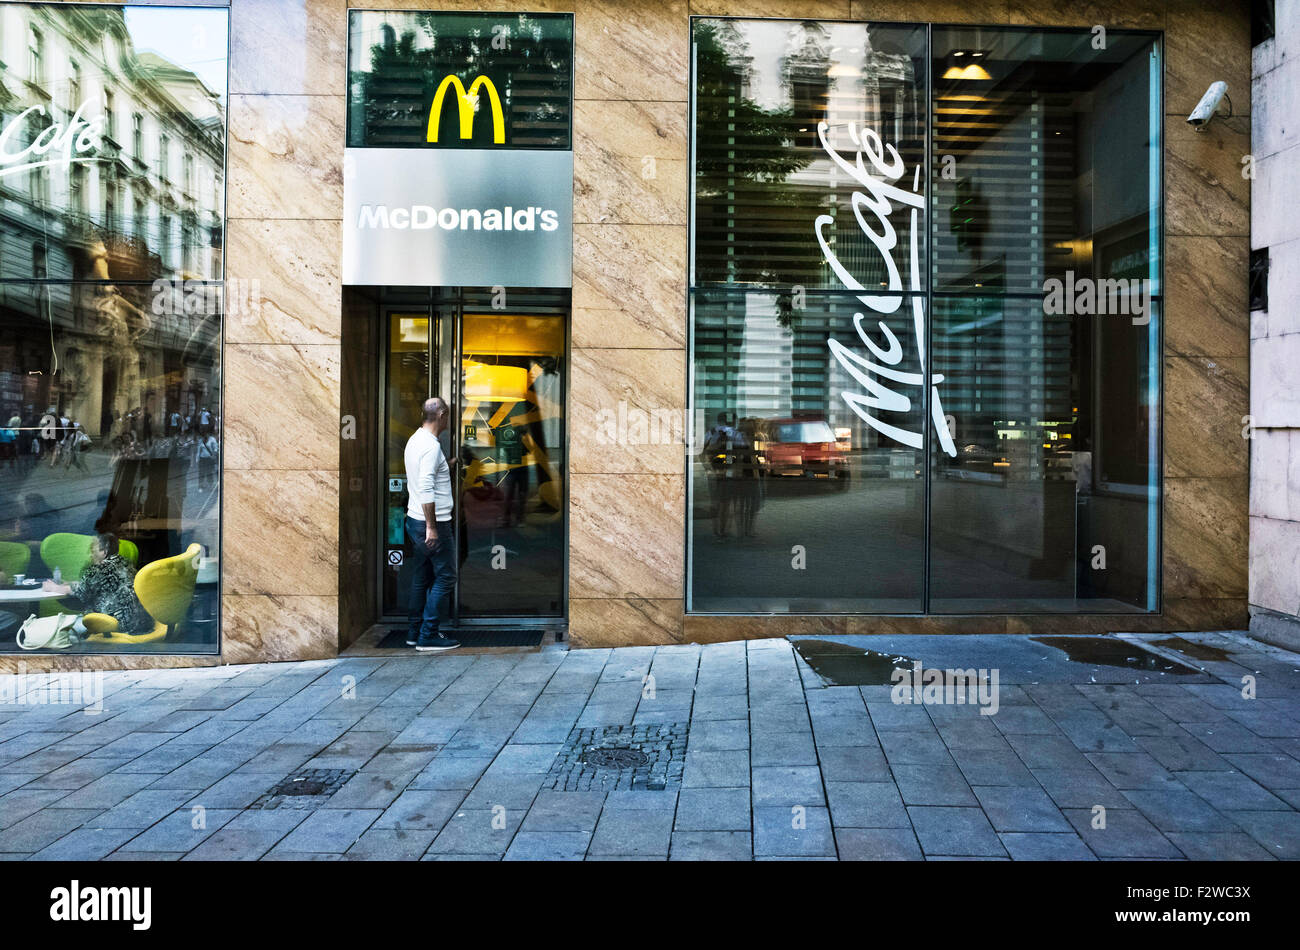 Fast Food Restaurant Entrance Stock Photos & Fast Food Restaurant ...